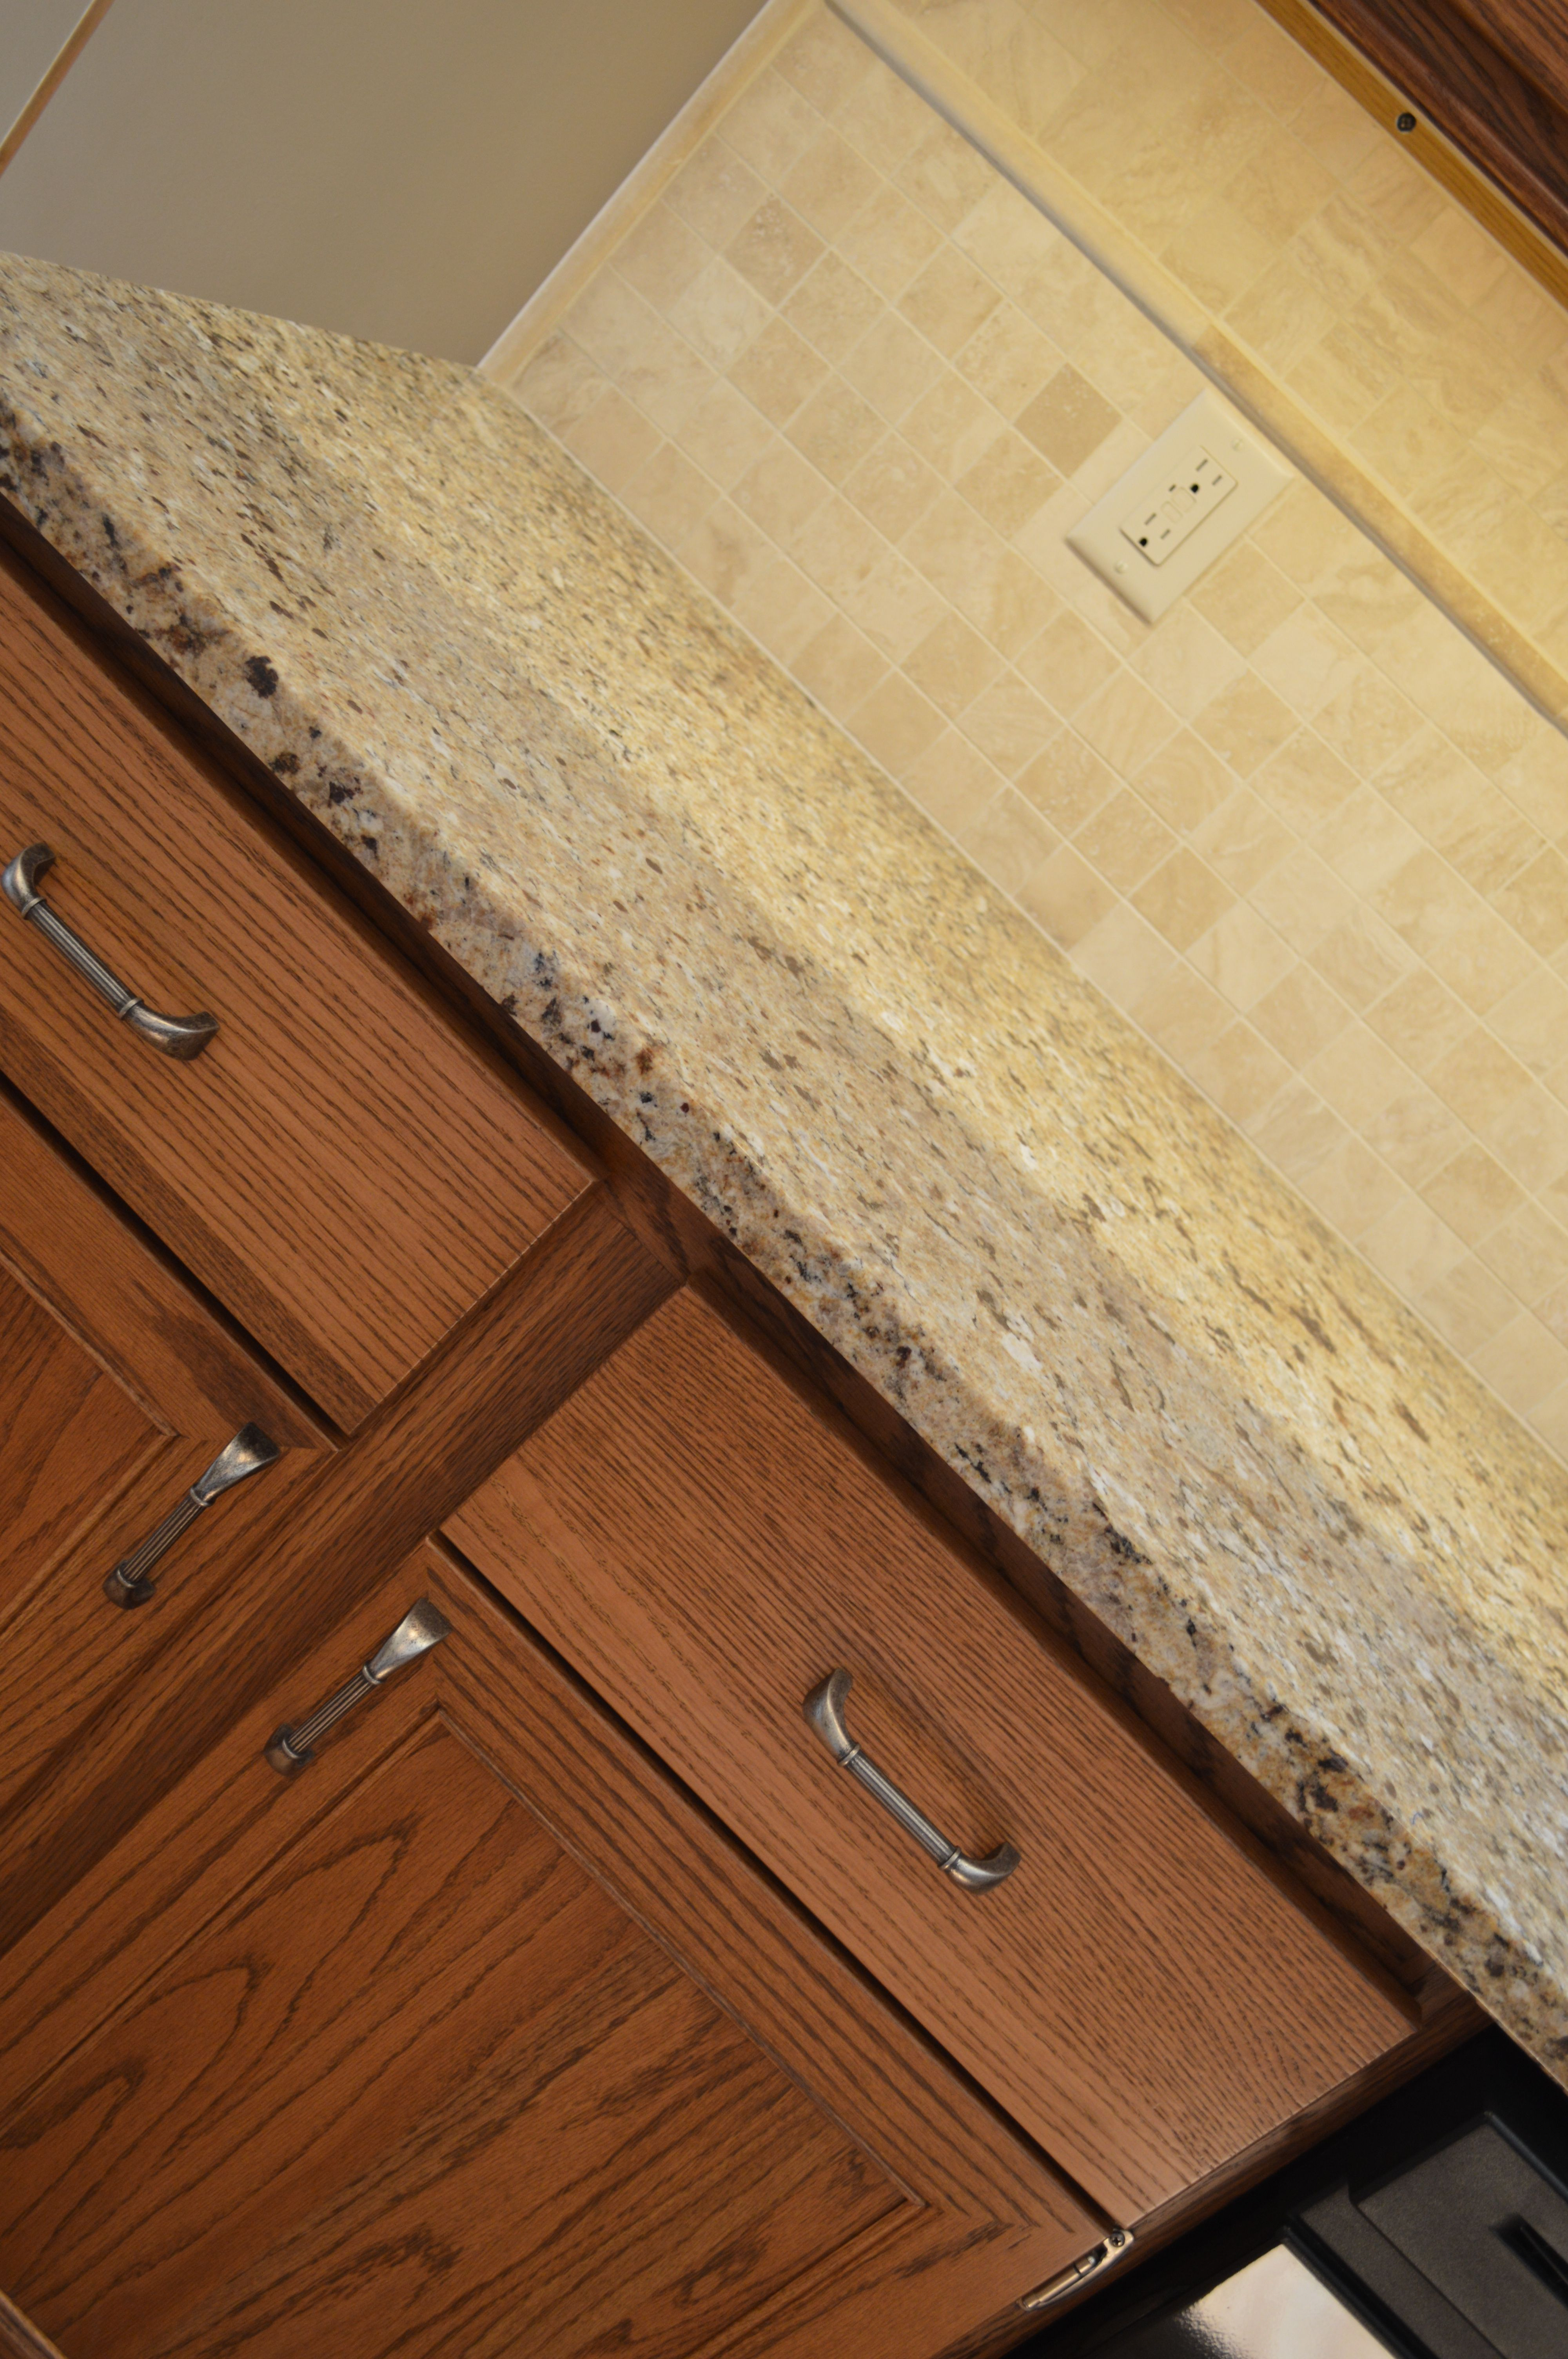 - Part Of A Cosmetic Kitchen Remodel, This Travertine Backsplash Has